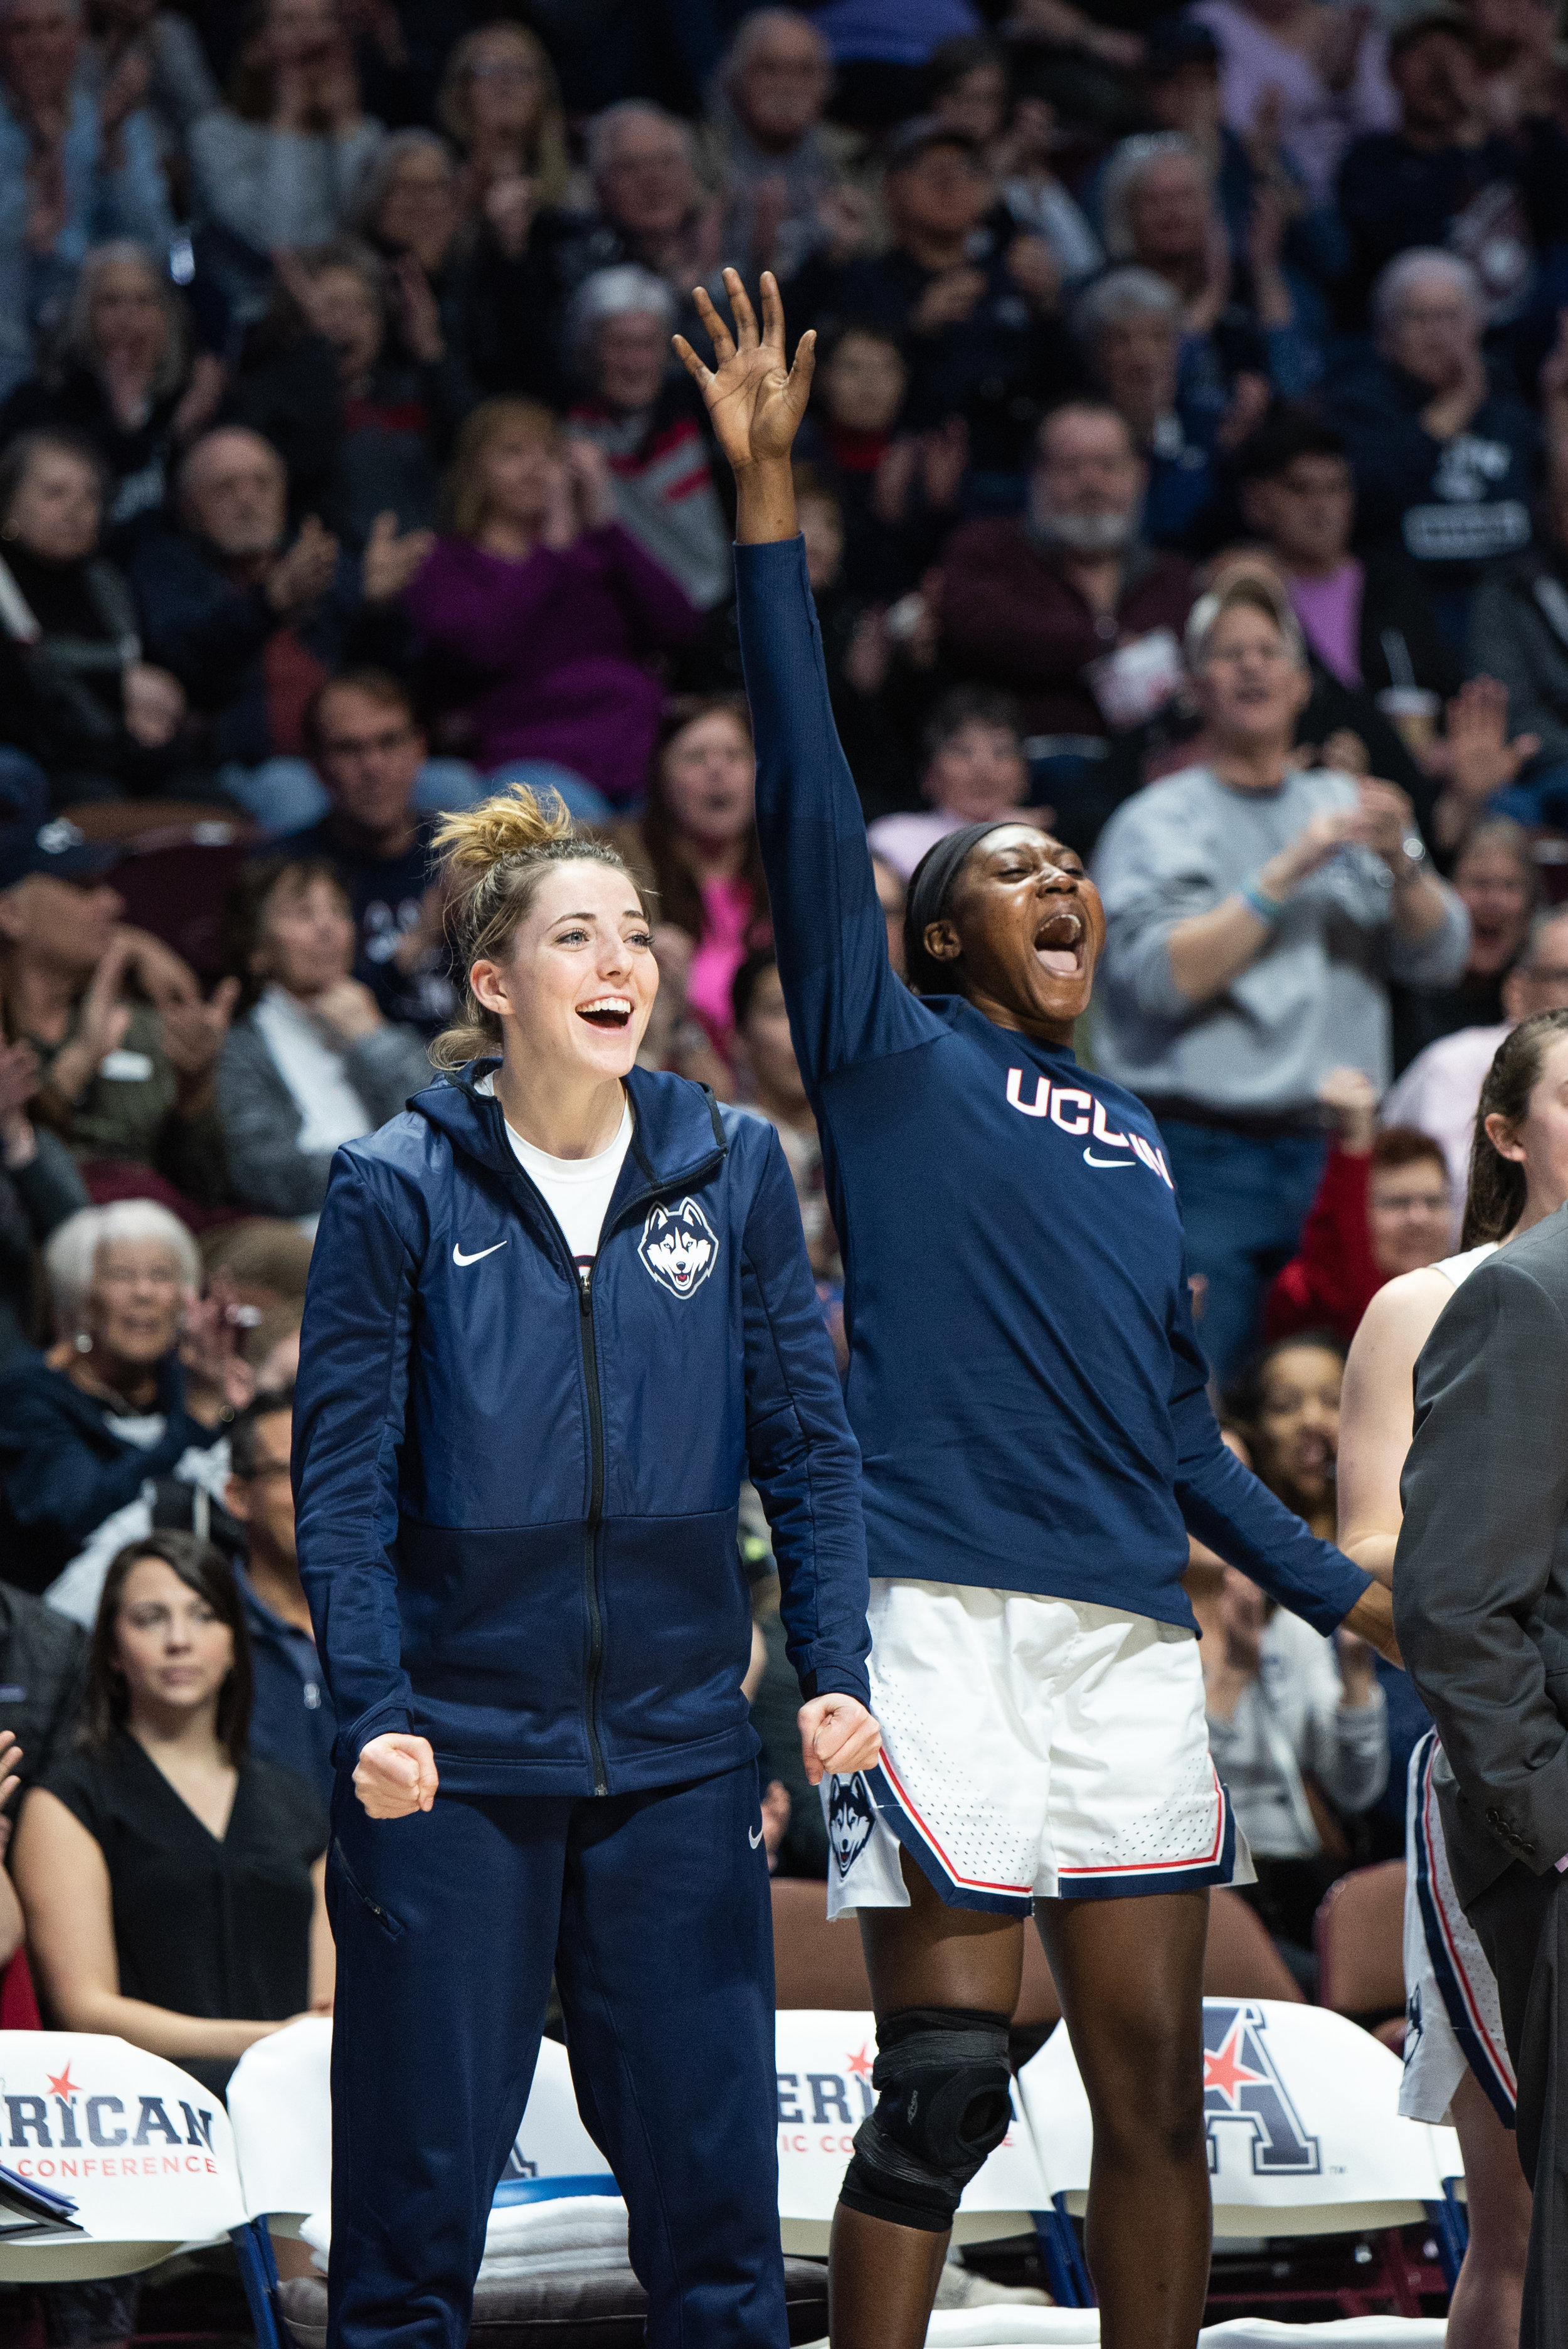 The fifth-annual event will highlight the many accomplishments of the UConn women's basketball team. Photo by Charlotte Lao/The Daily Campus